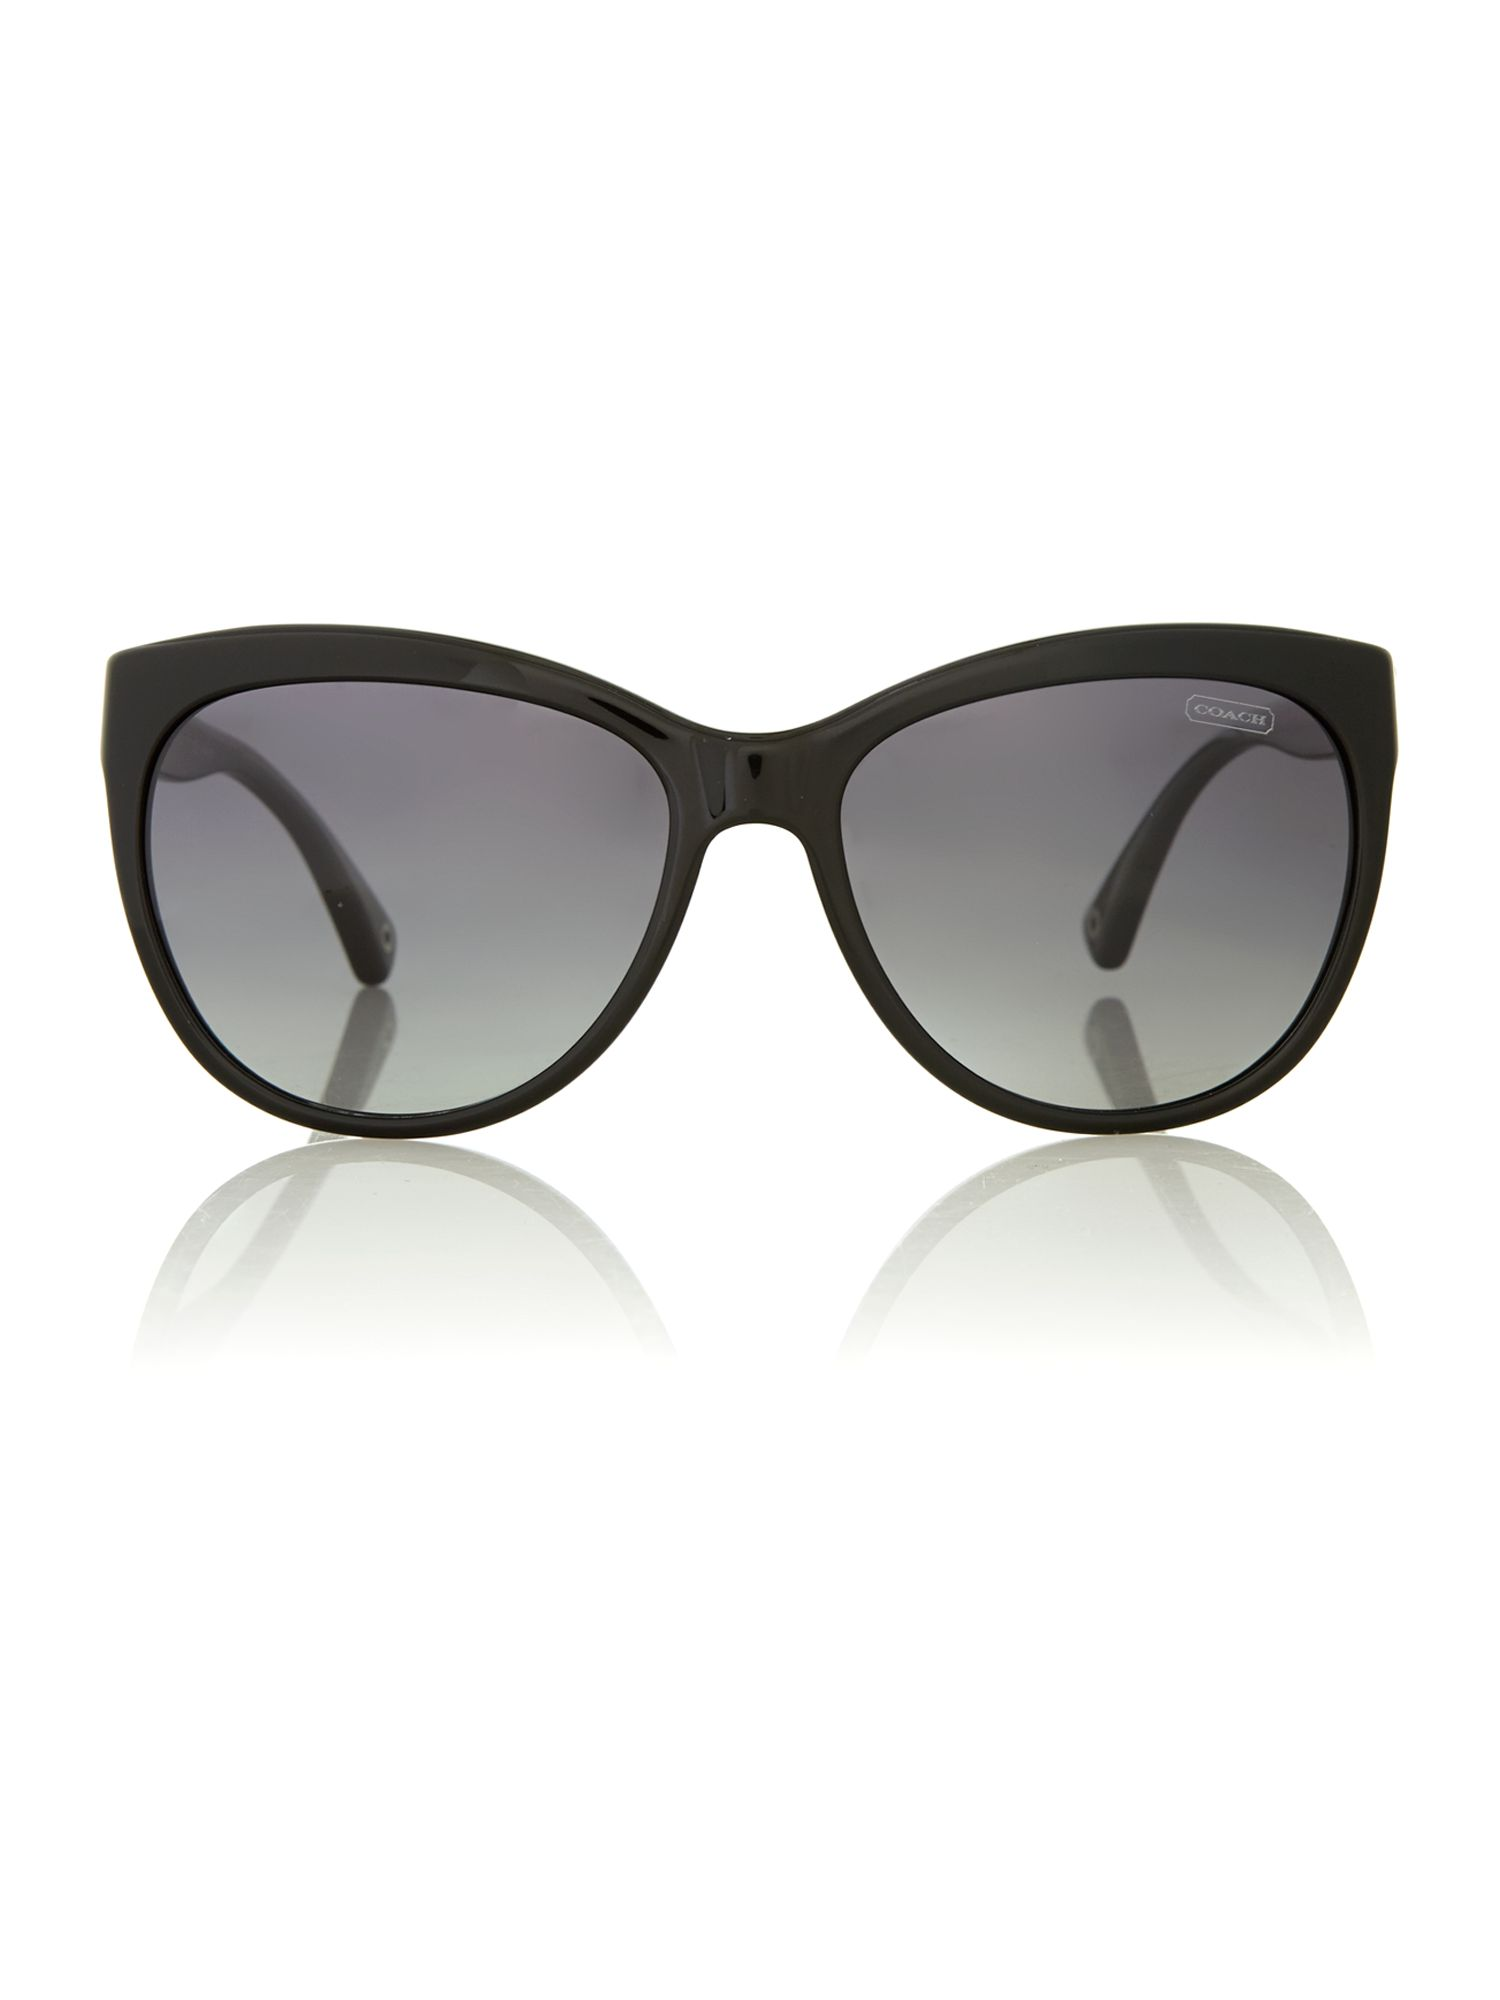 Ladies HC8019 black samantha sunglasses